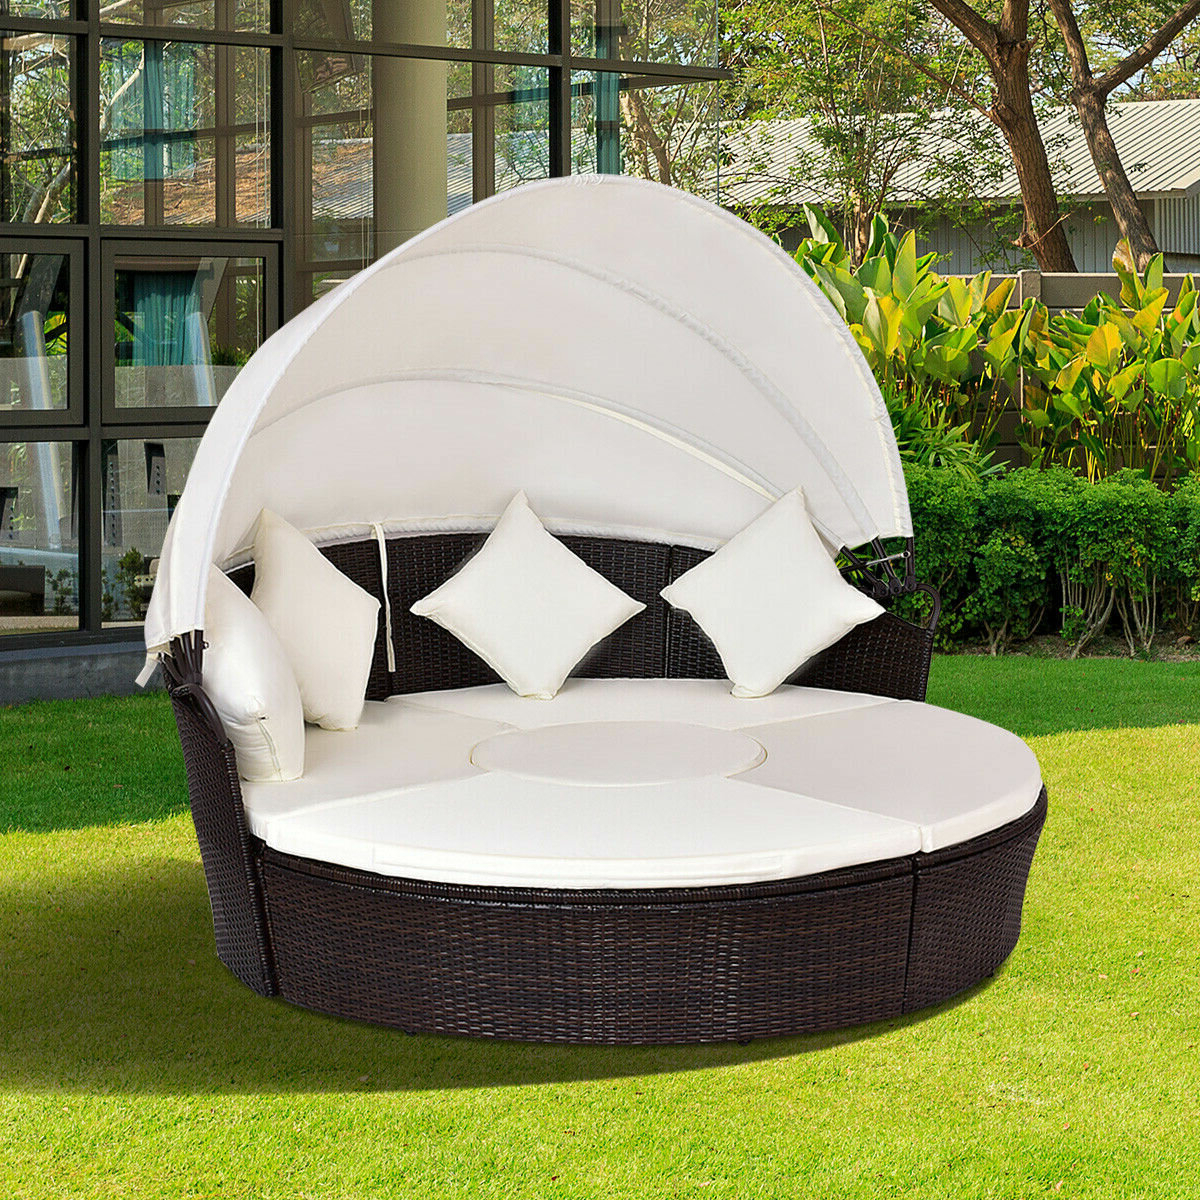 Fashionable Leiston Round Patio Daybeds With Cushions In Sharleen Patio Daybed With Cushions (View 10 of 20)